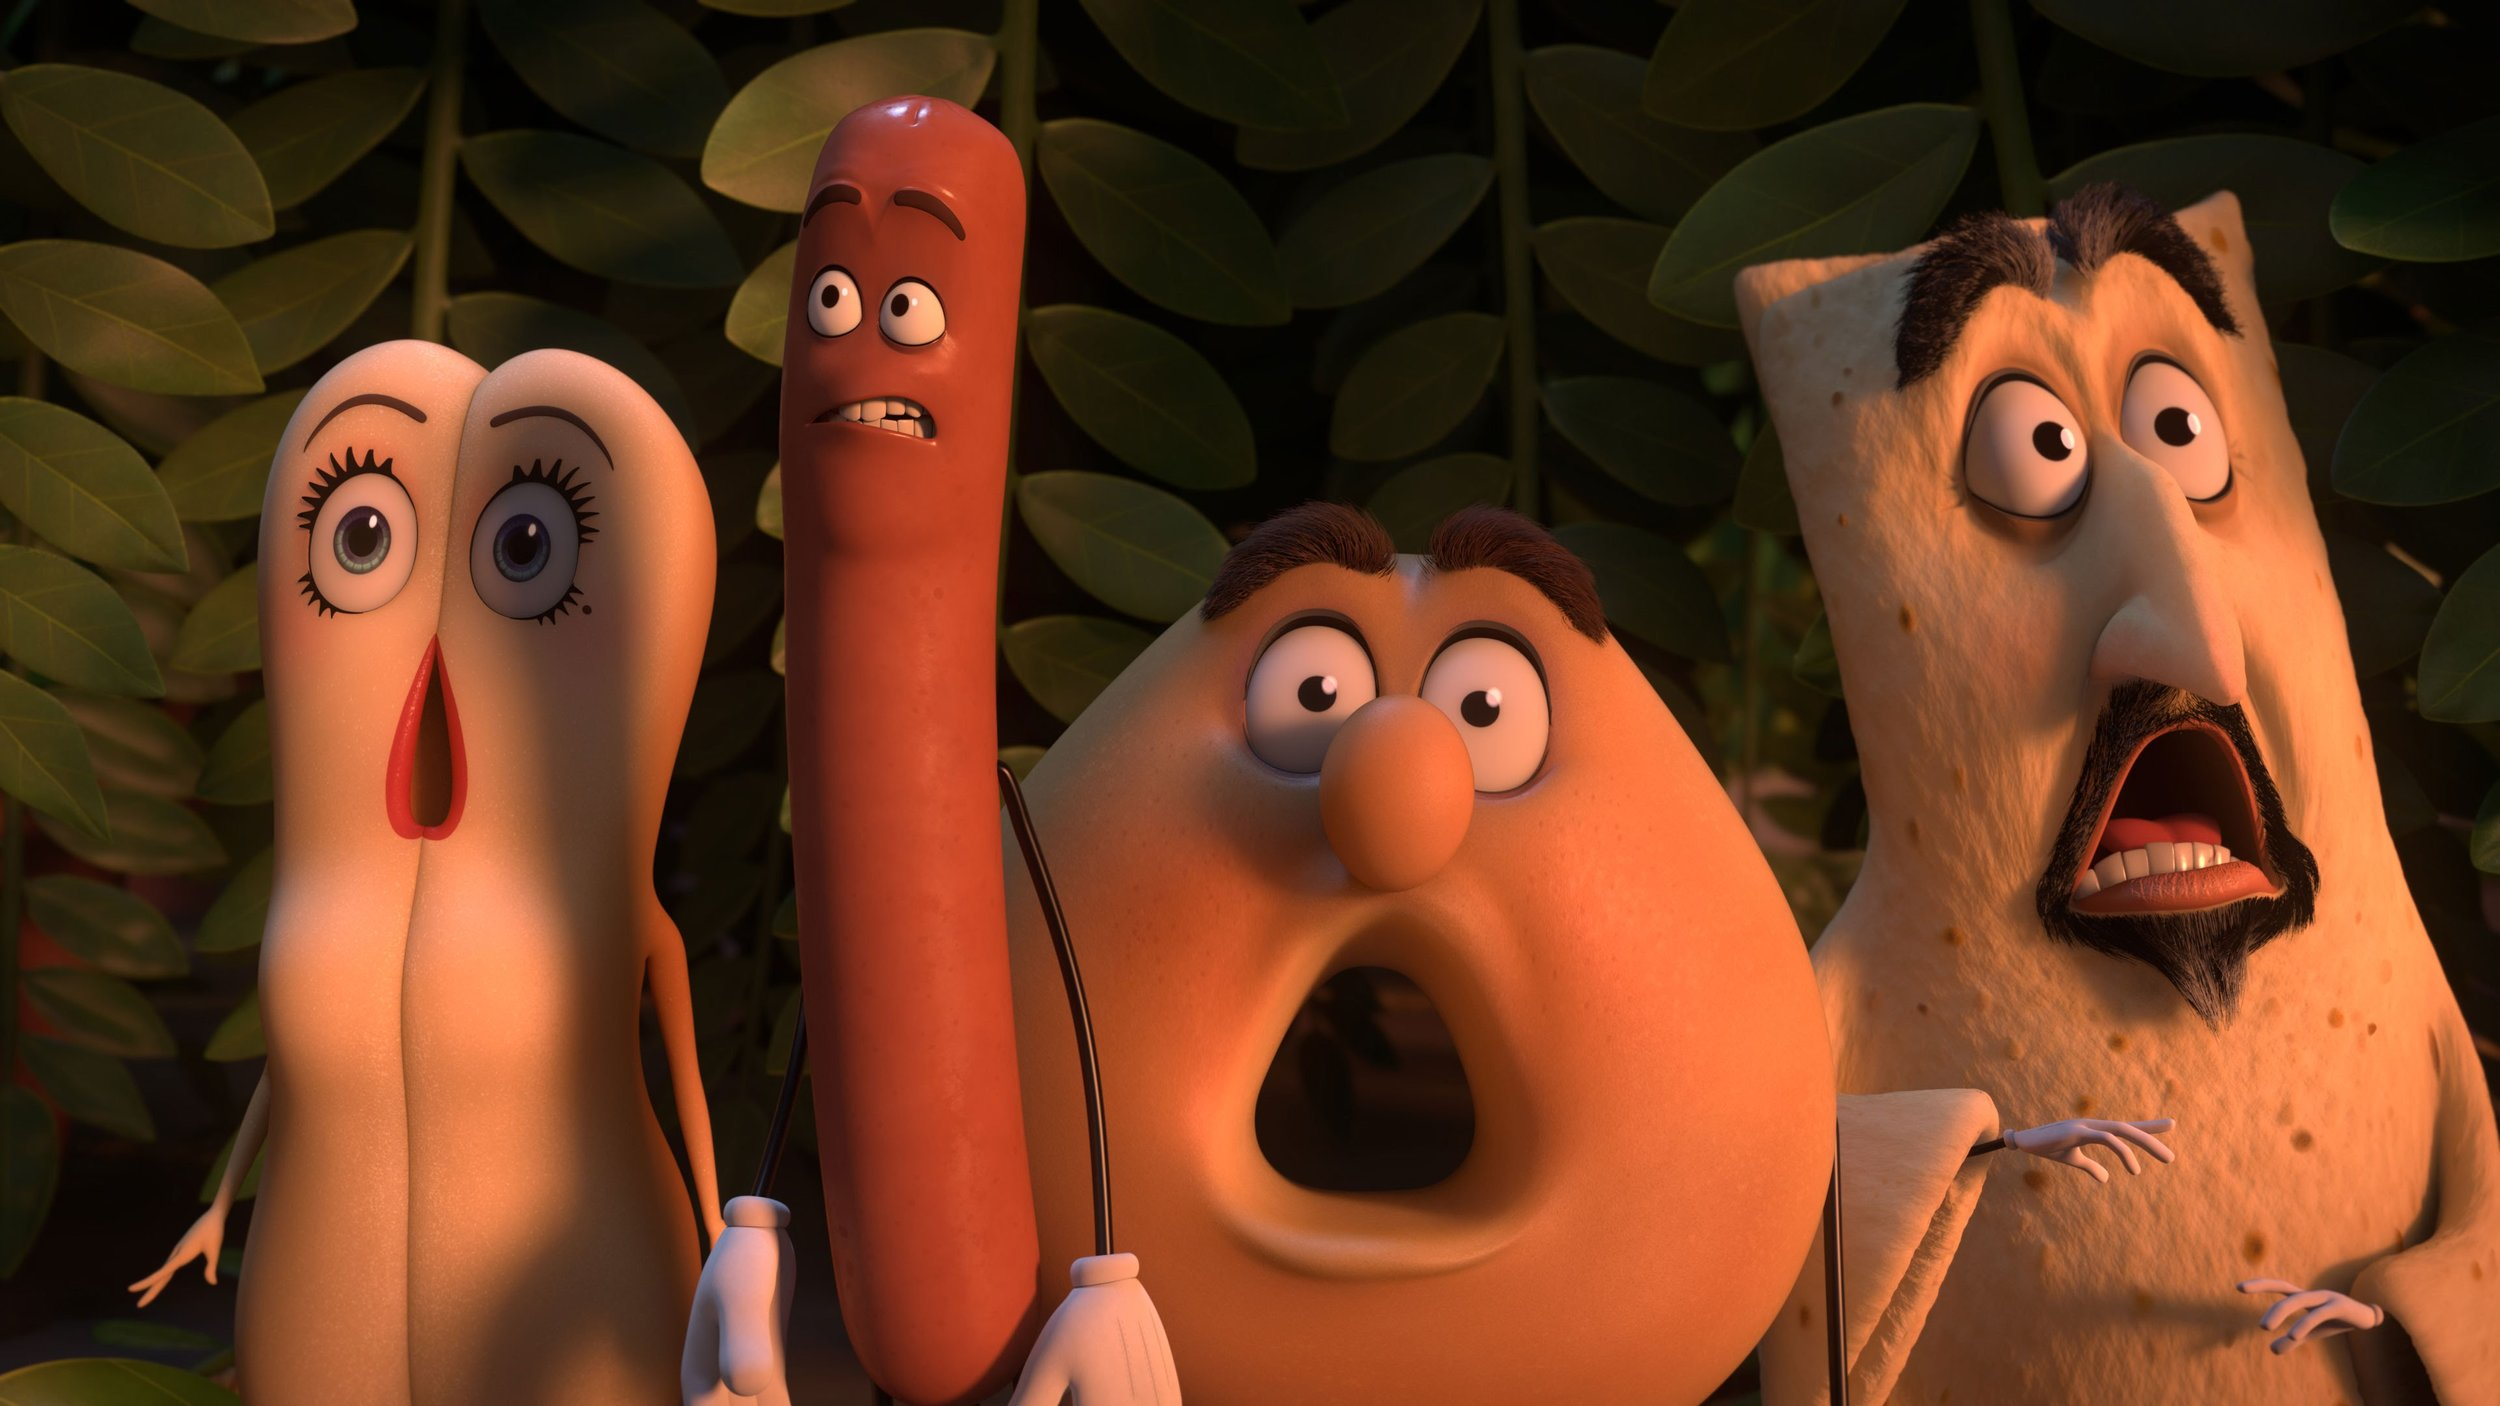 'Sausage Party', featuring the voices of Seth Rogen, Kristen Wiig and many more.